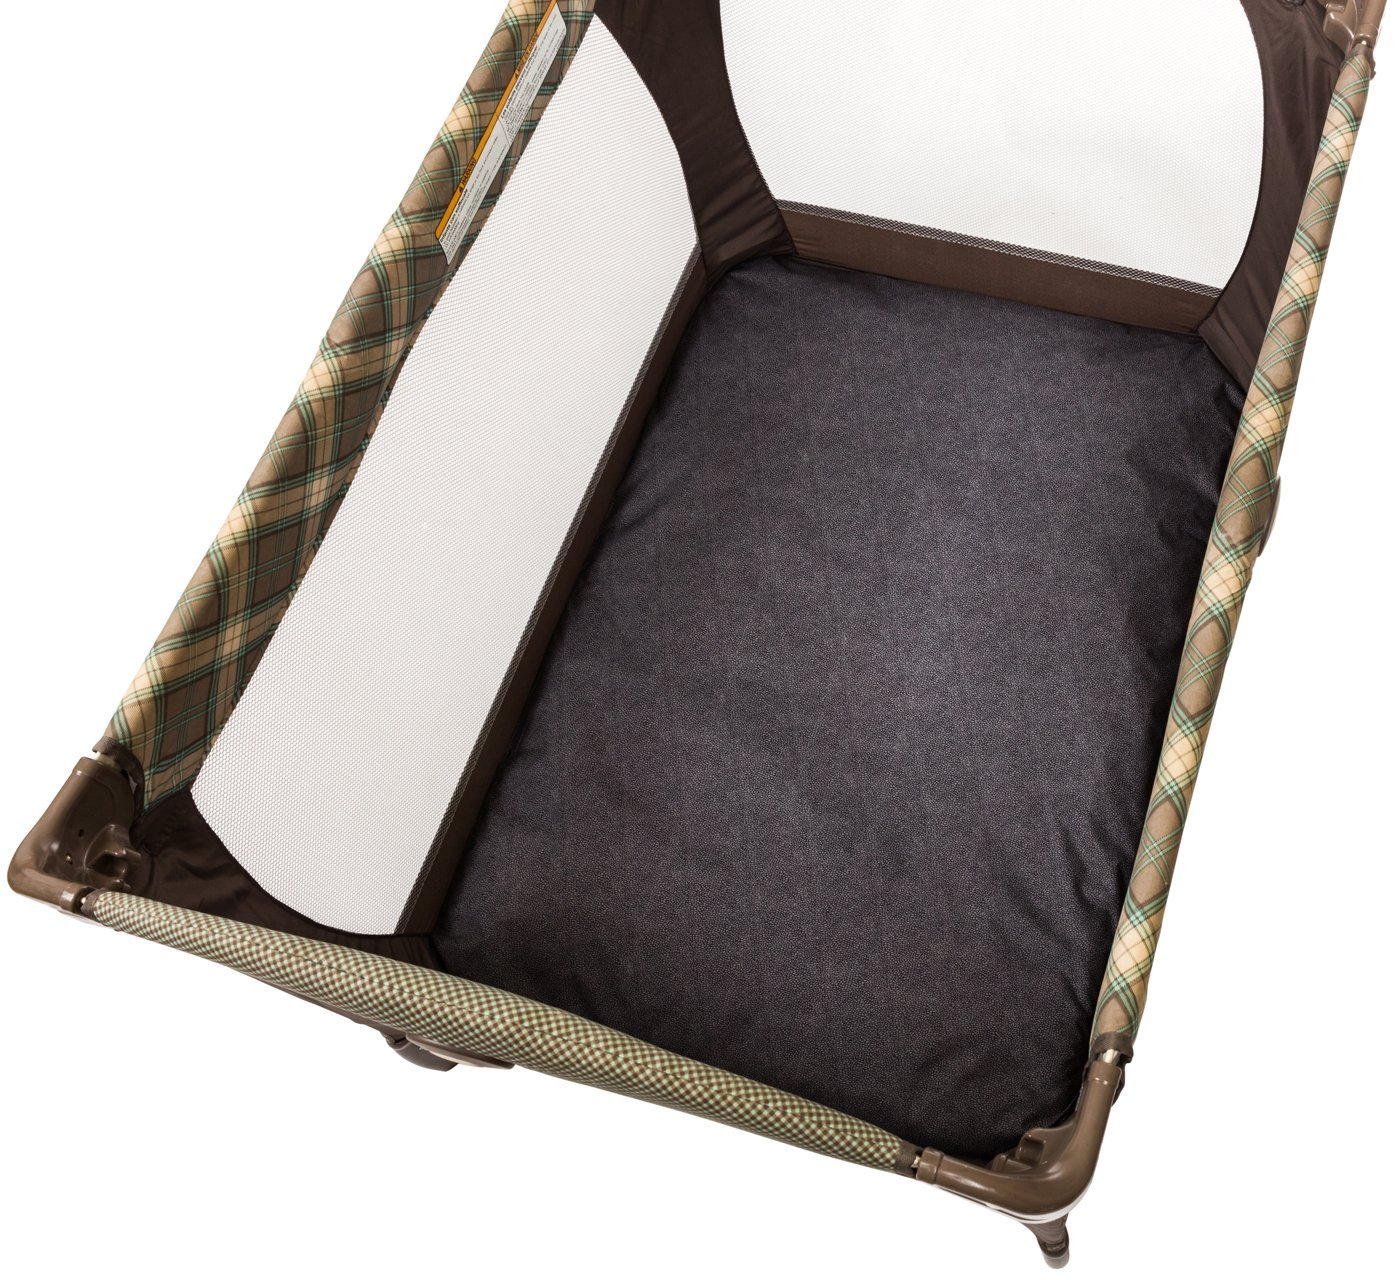 Chicco Waterproof Playard Sheets (Set of 2) Baby Infant Portable Playard Bed Genesis Gray 180009